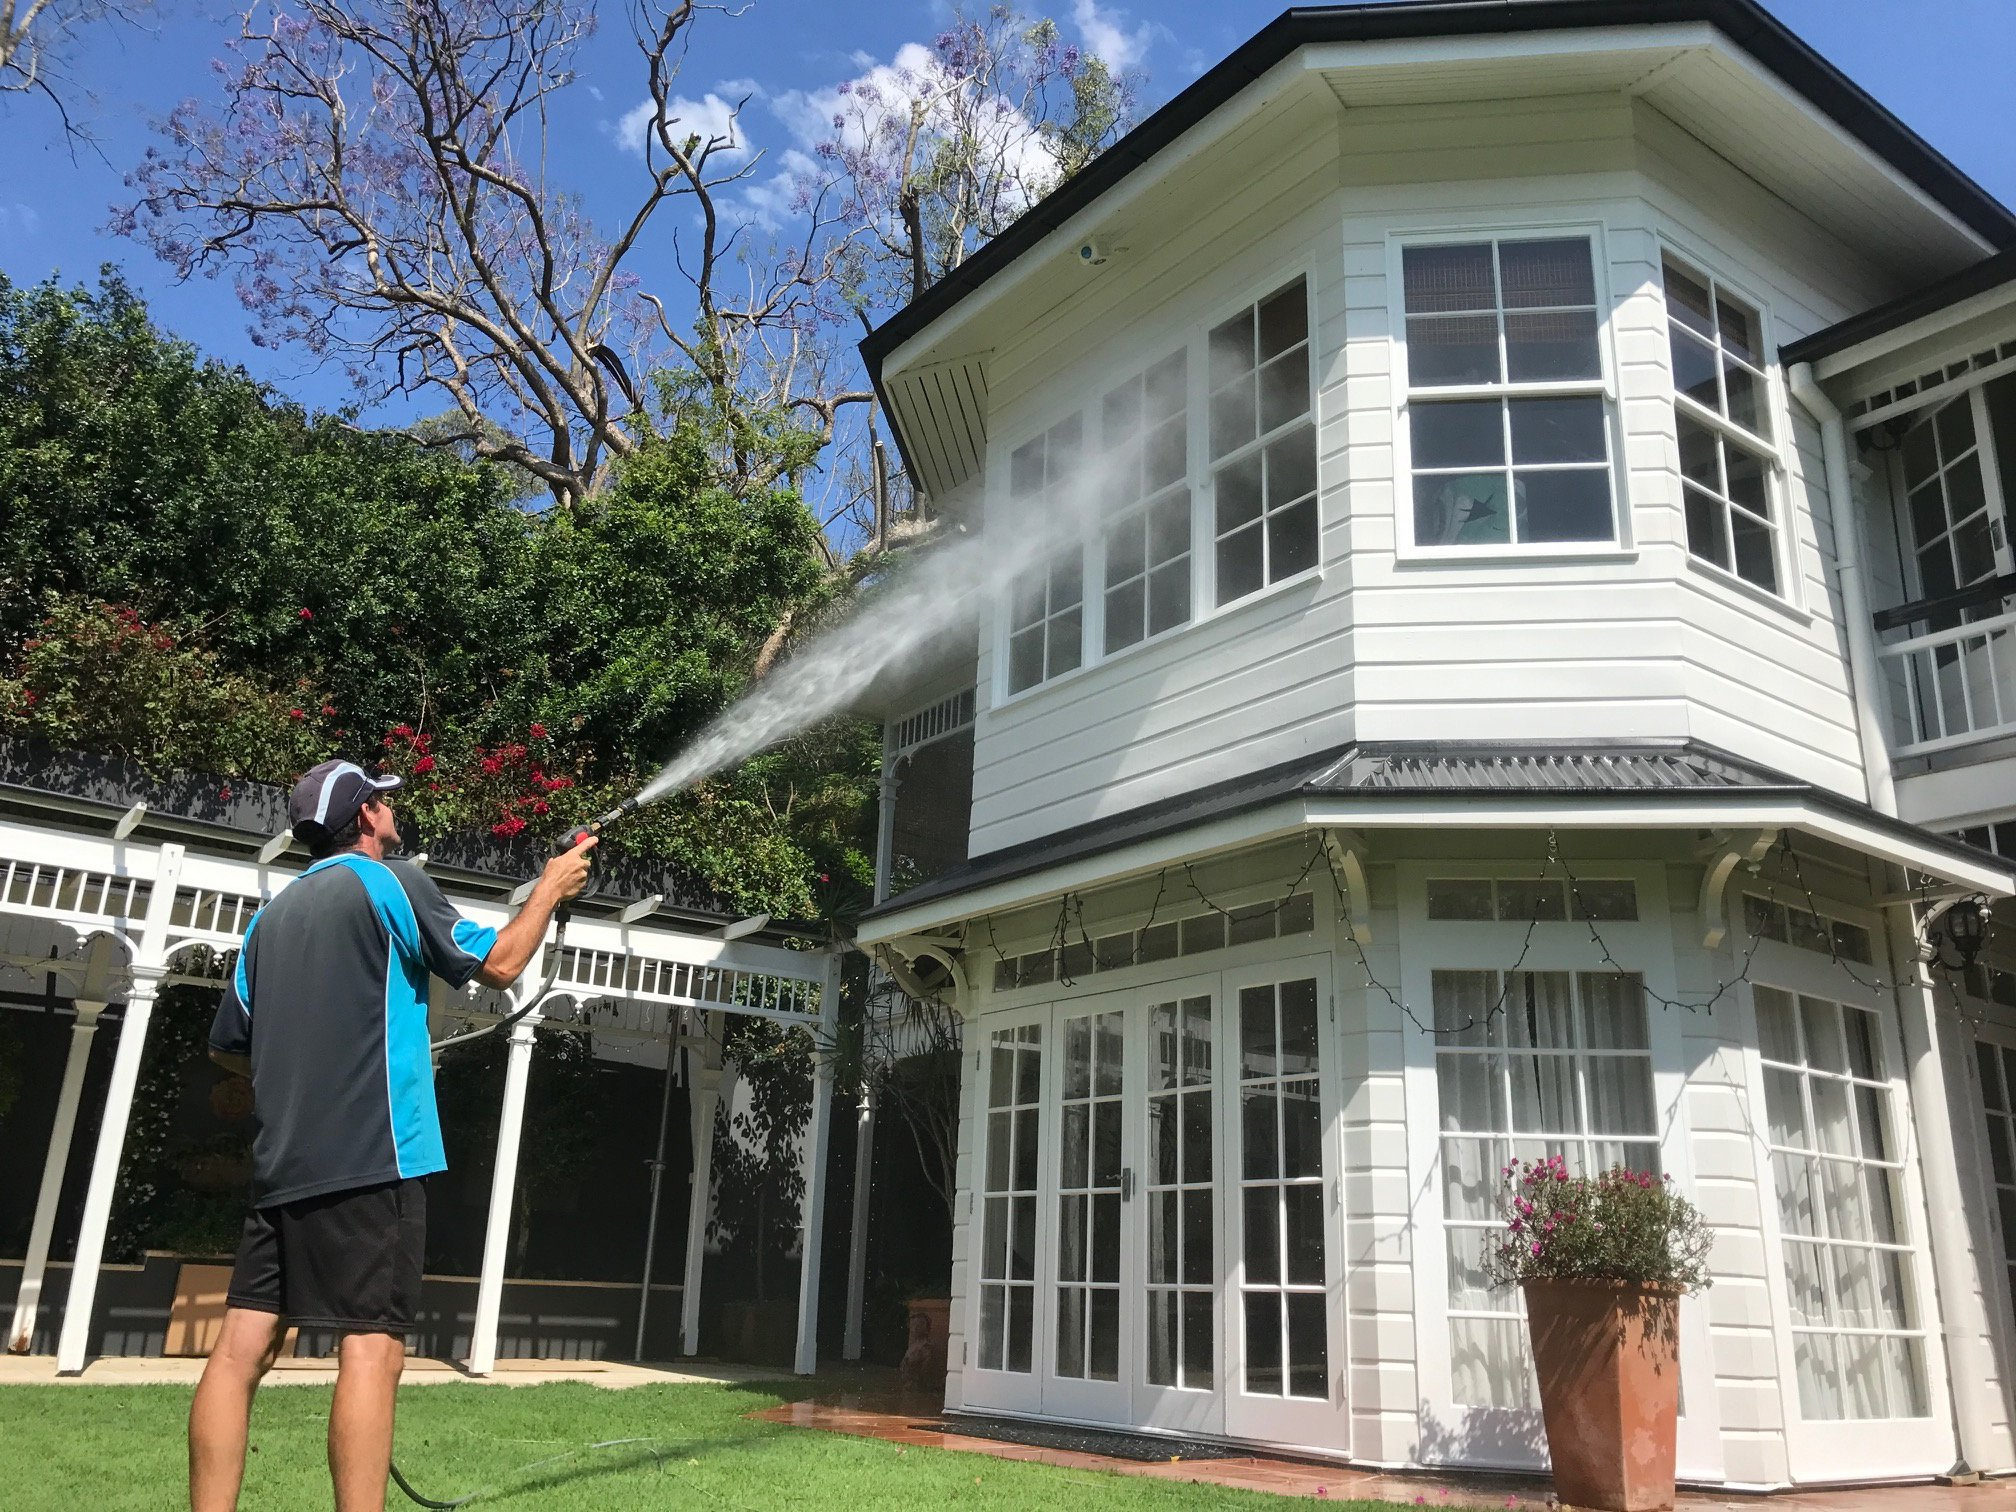 Brisbane CBD Roof washing services